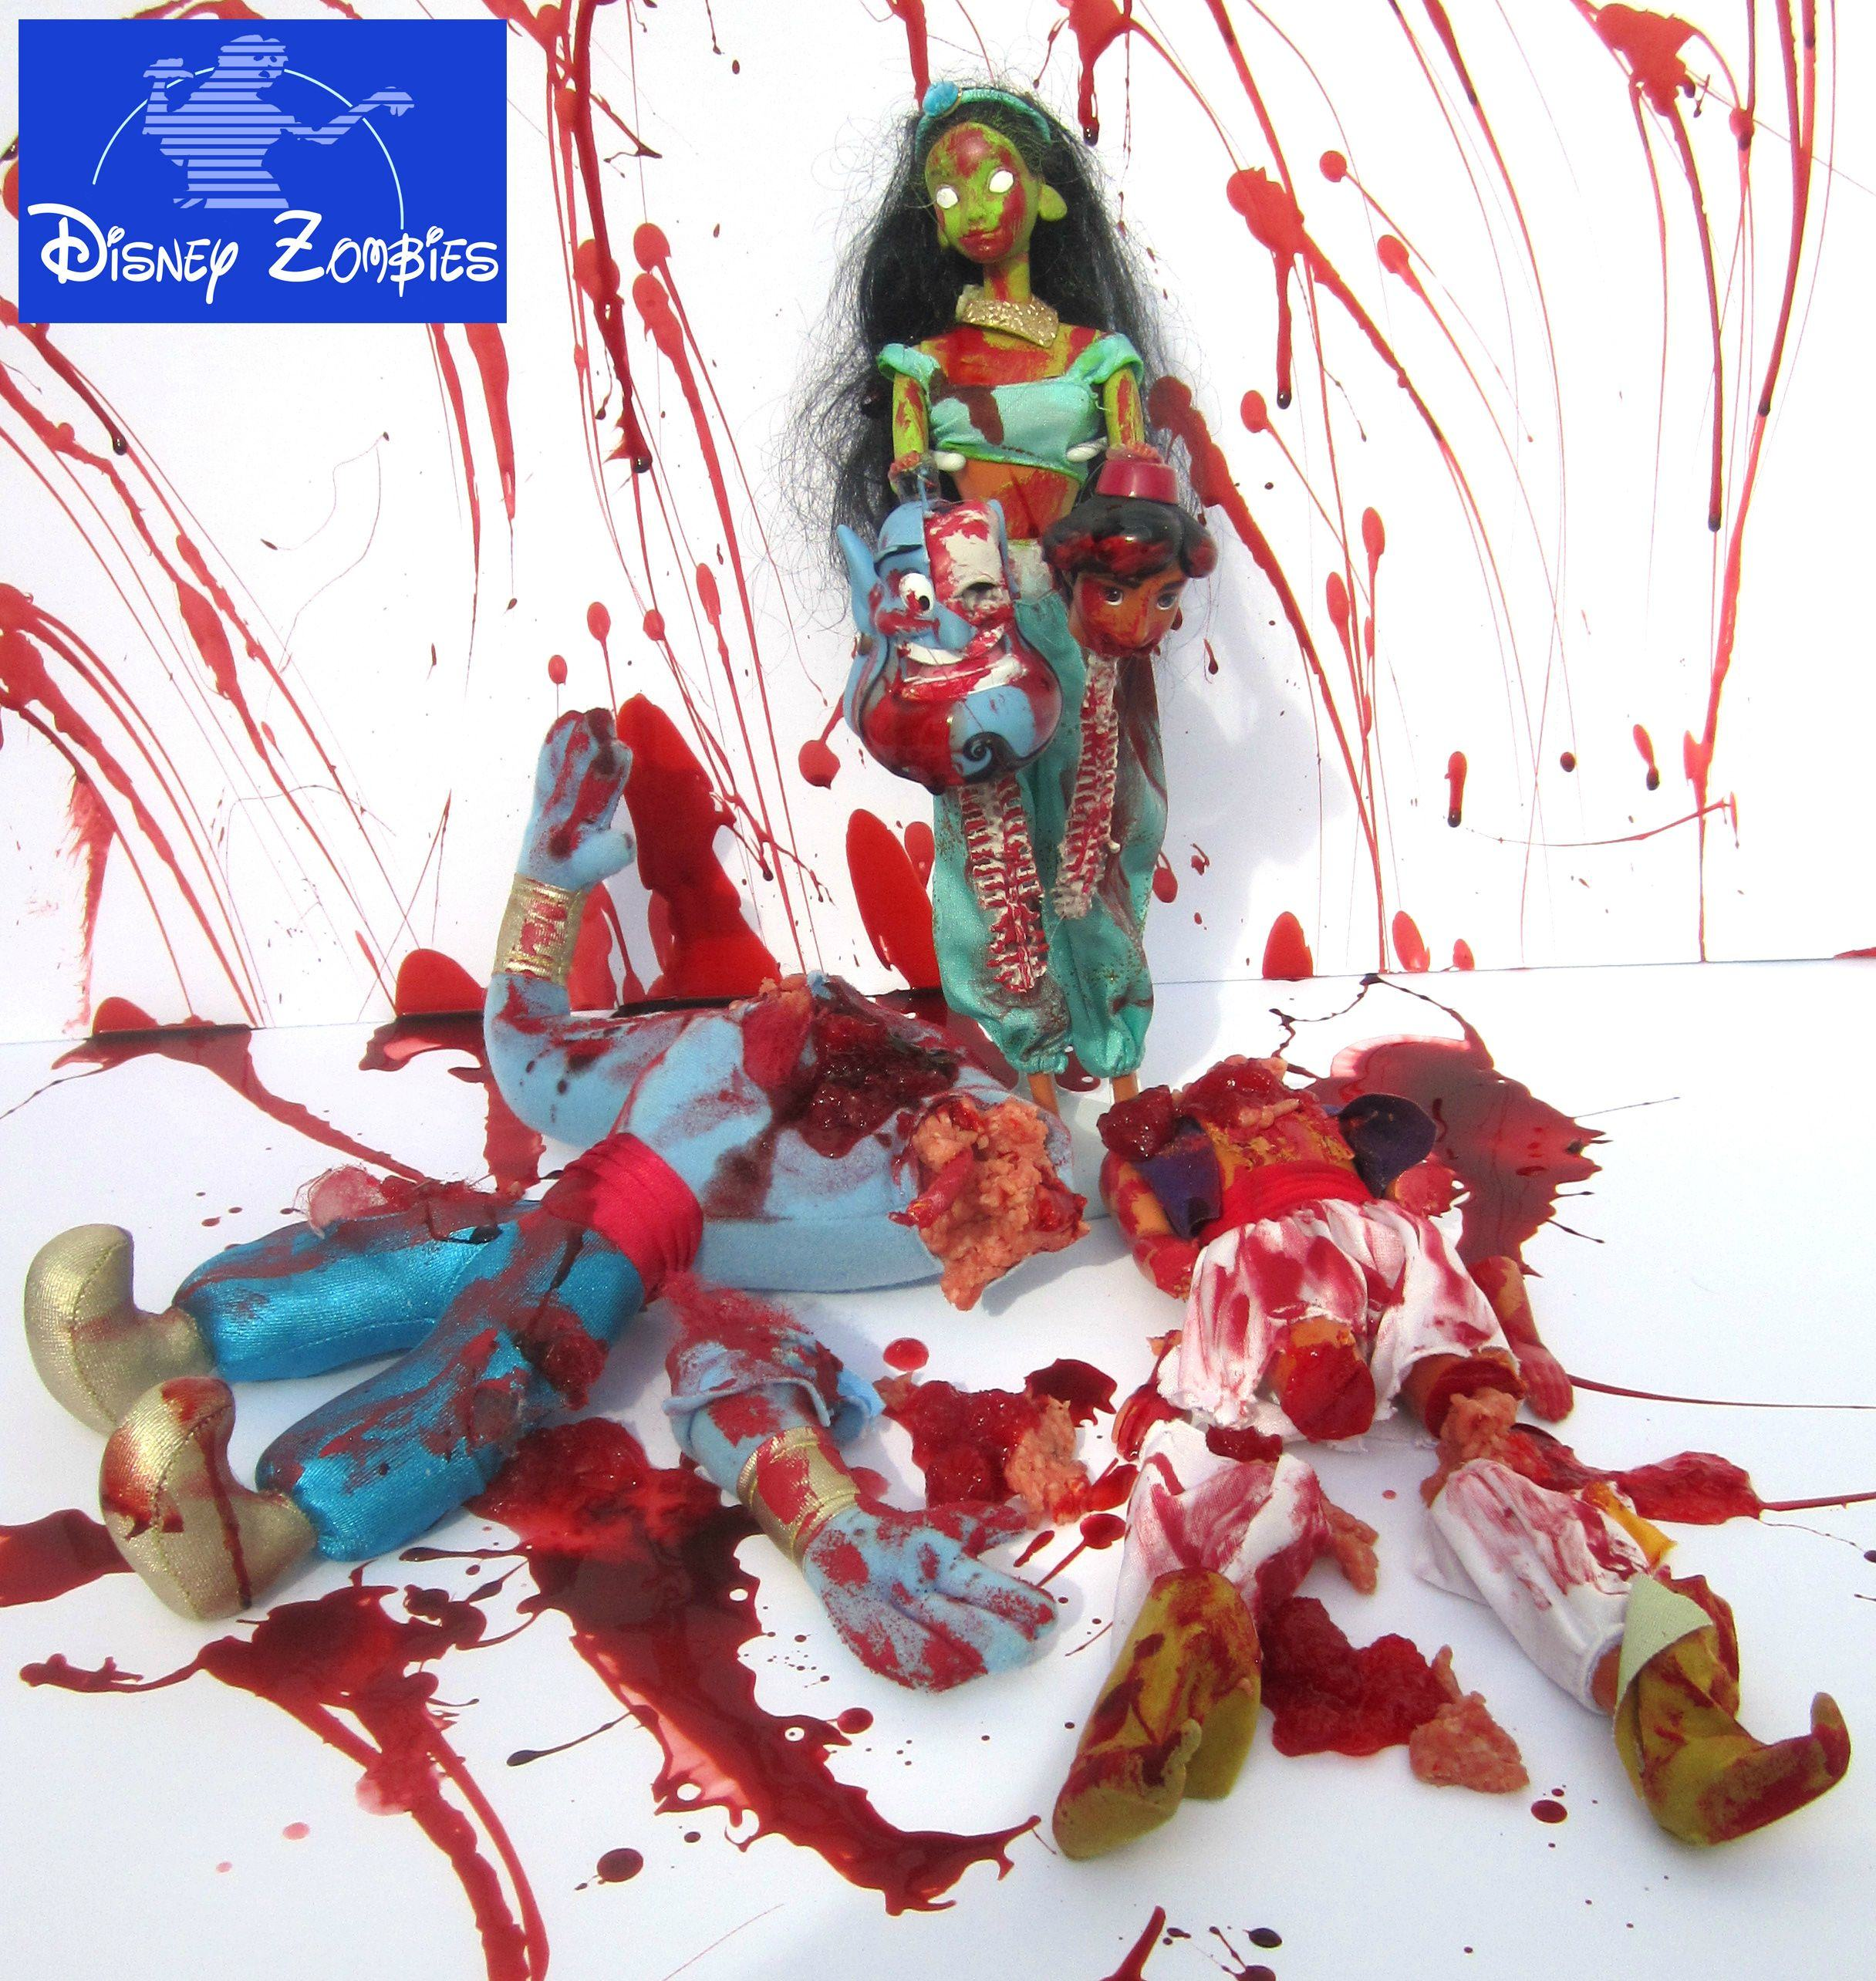 Disney Zombie Princesses By Matt Christensen Pleated Jeans